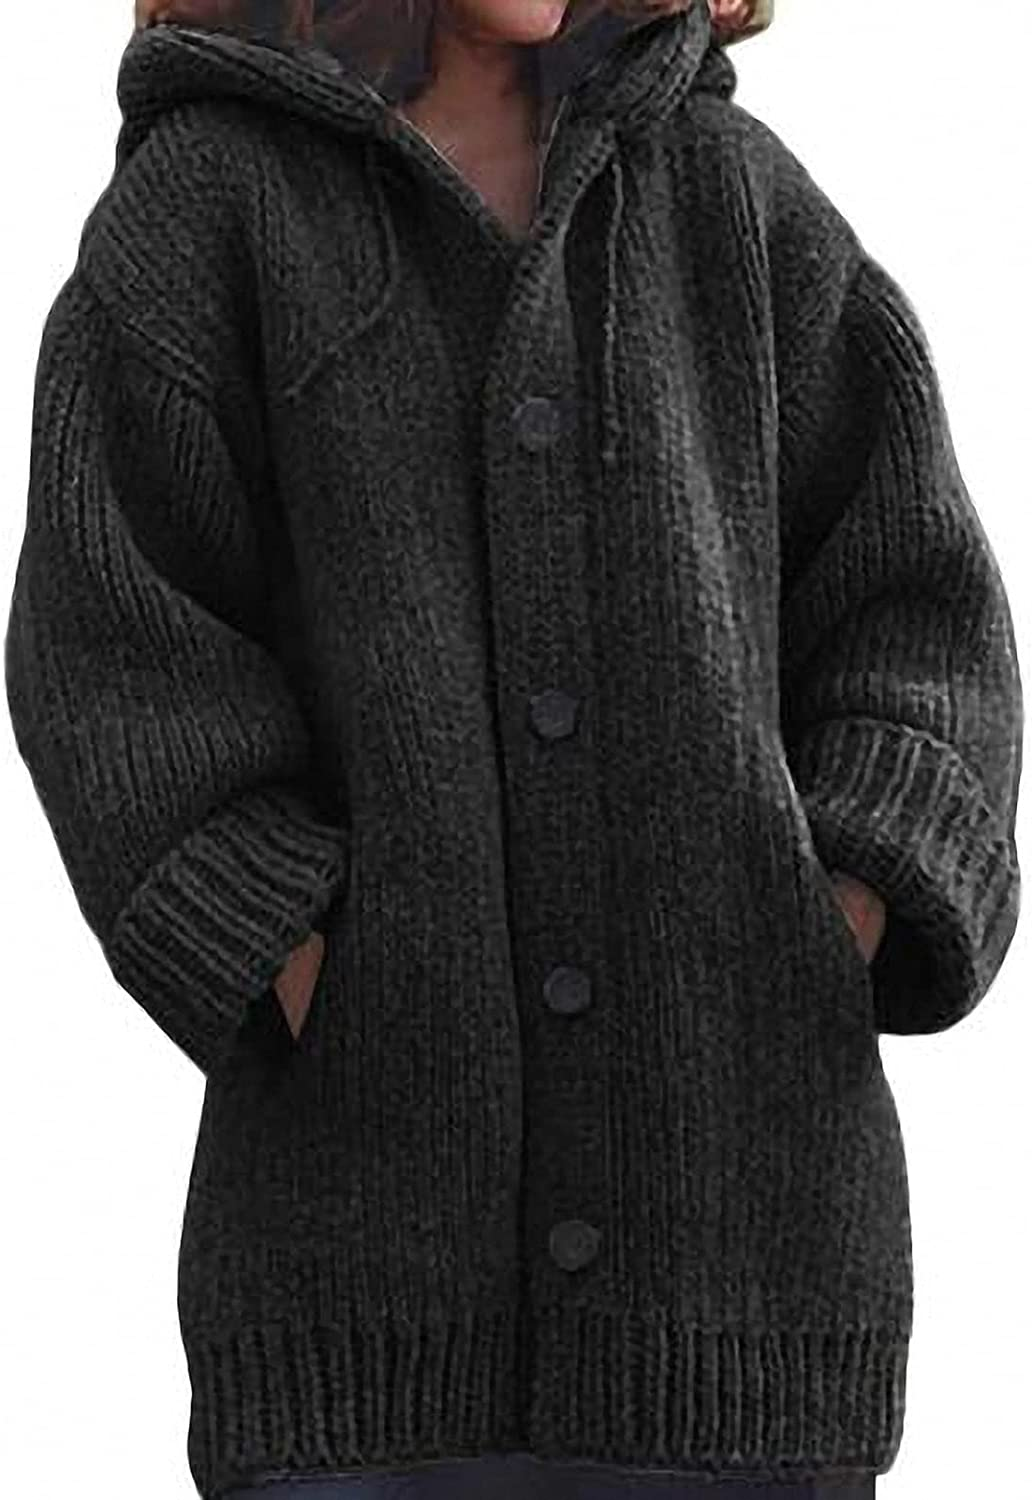 Barsly Women Thick Sweater Coat Warm Knit Outerwear Autumn Winter Long Hooded Cardigan Lady Clothing